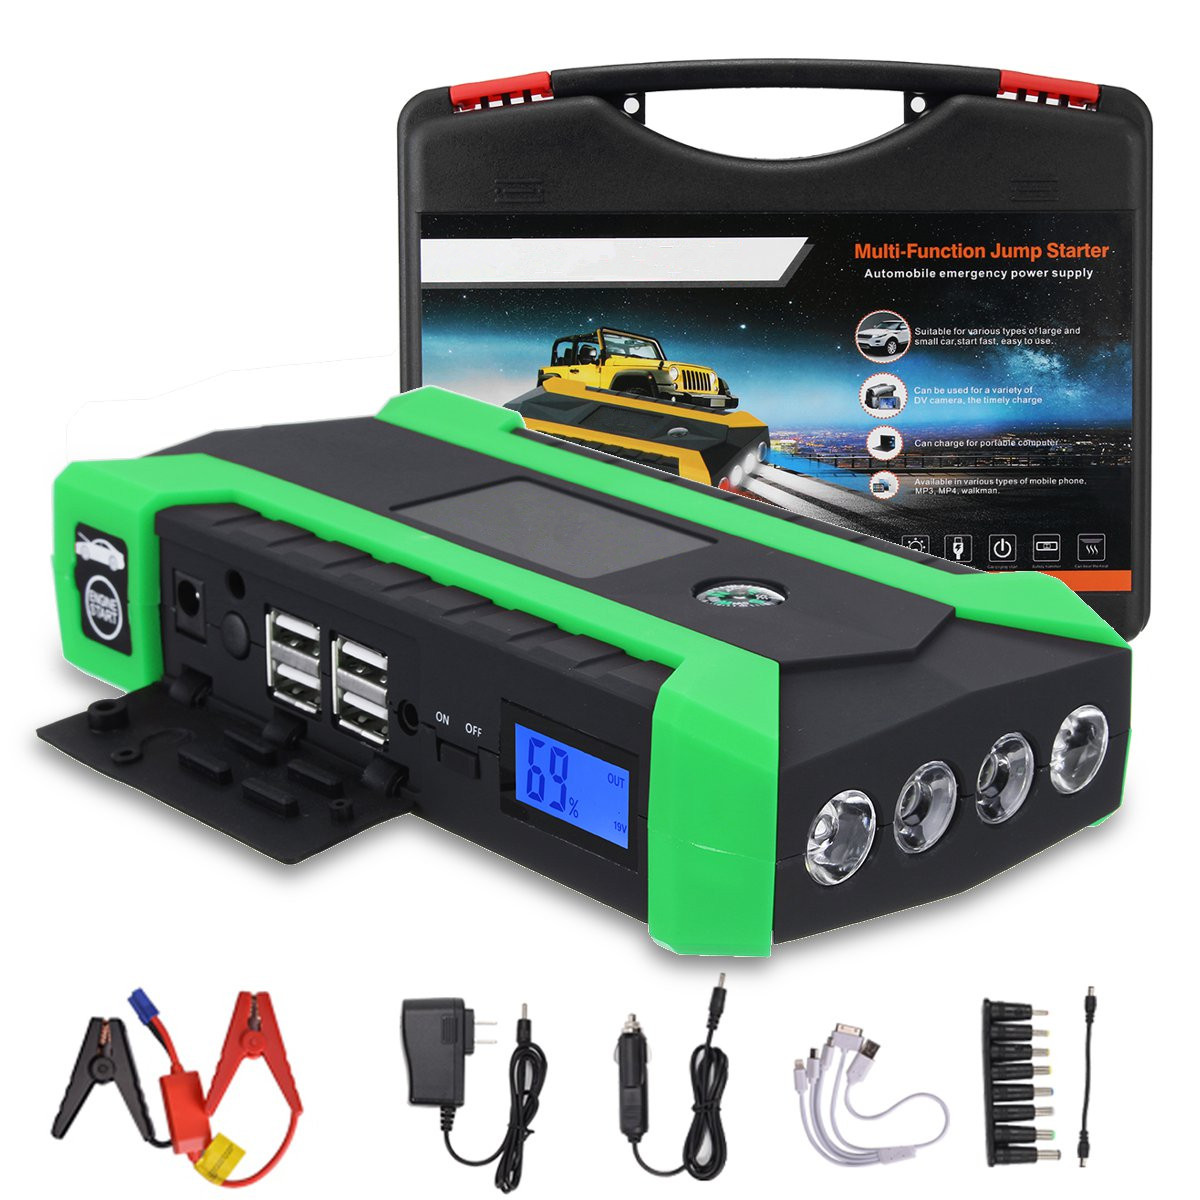 89800mAh 600A 12V 4USB Car Jump Starter Portable Car Battery Booster Charger Booster Power Bank Starting Device Car new 12v 89800mah portable 4usb car jump starter power bank tool kit booster charger battery automobile emergency led light